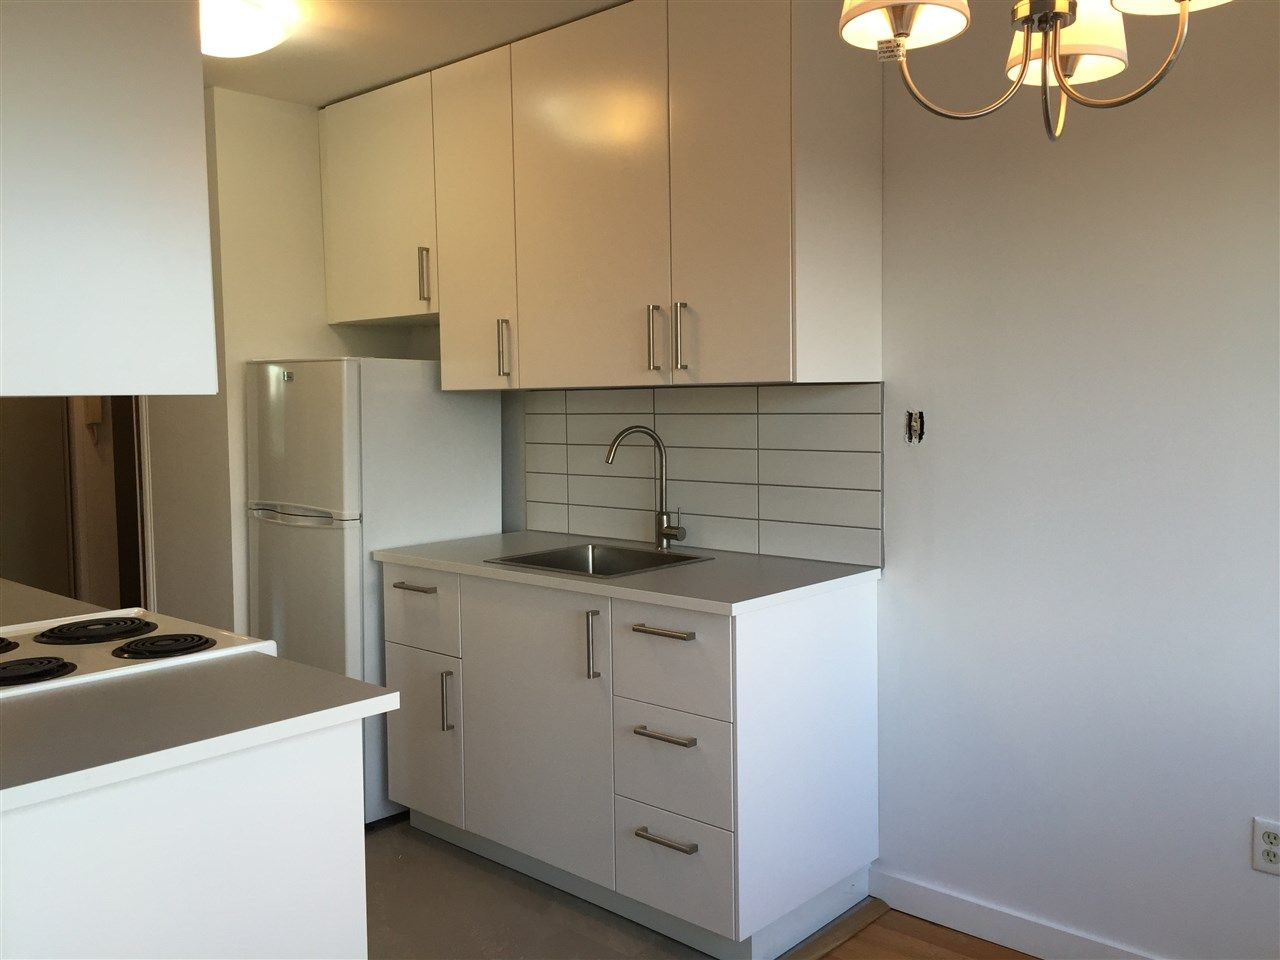 "Photo 5: Photos: 504 6026 TISDALL ST in Vancouver: Oakridge VW Condo for sale in ""Oakridge Towers"" (Vancouver West)  : MLS®# R2021576"